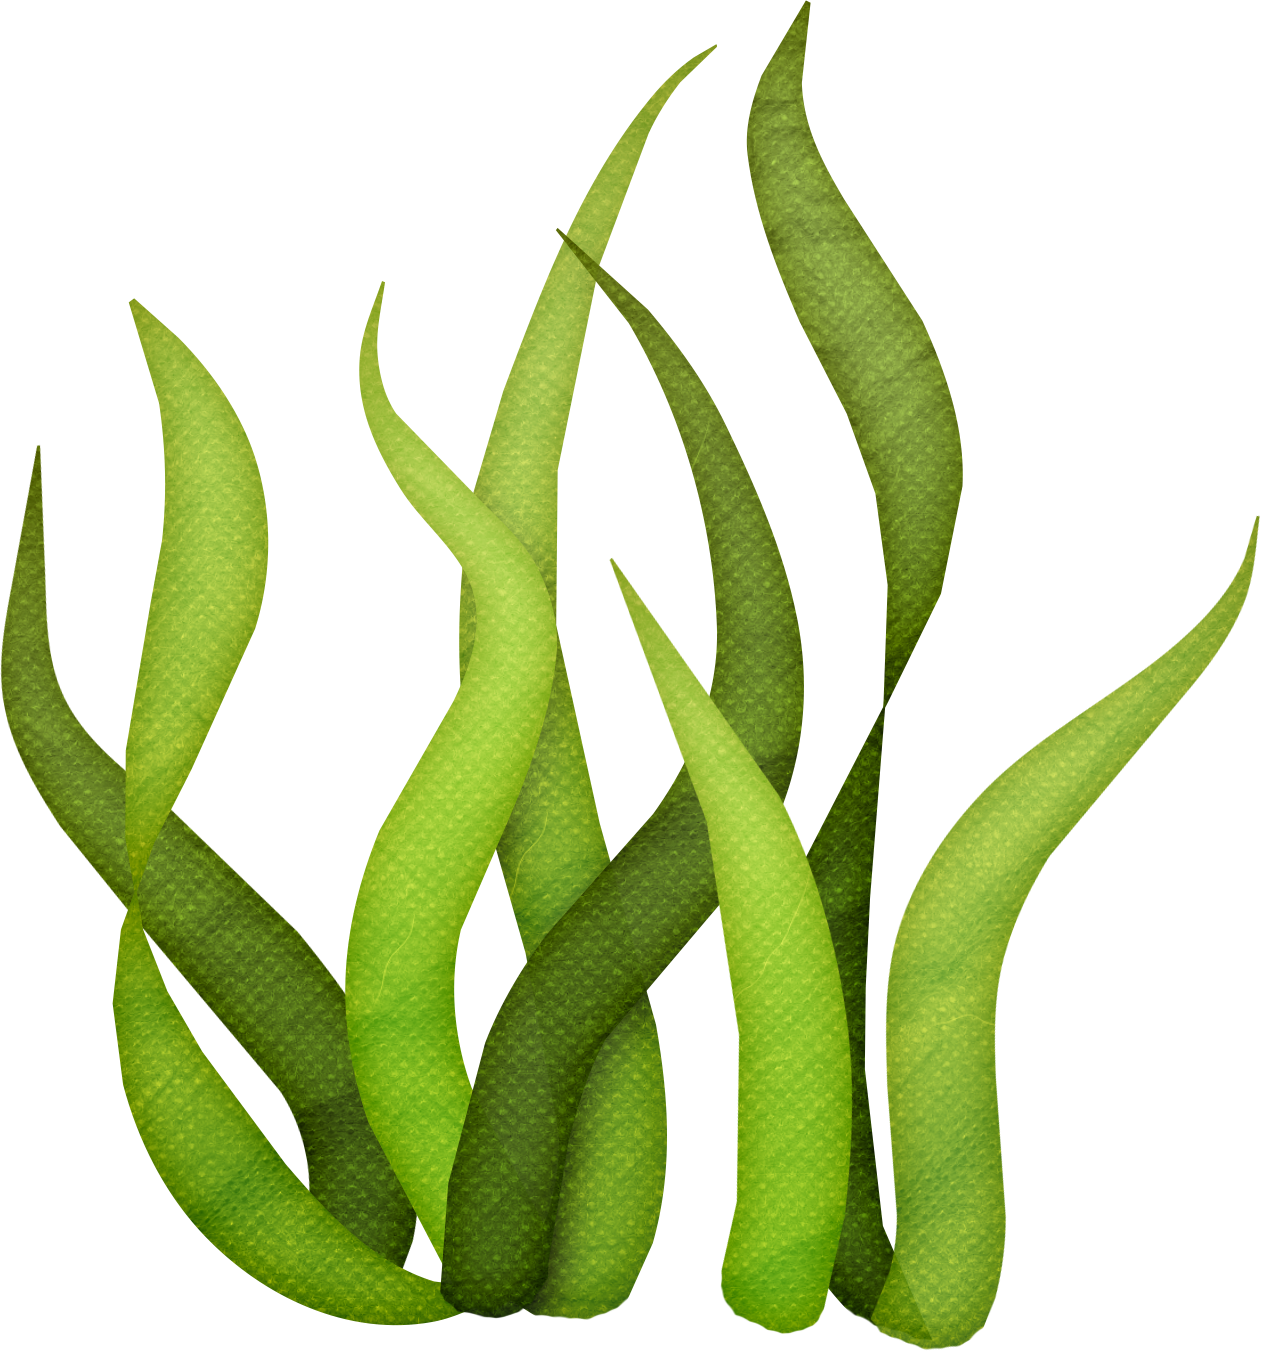 sea plants clipart at getdrawings com free for personal spring clip art free free spring clipart backgrounds